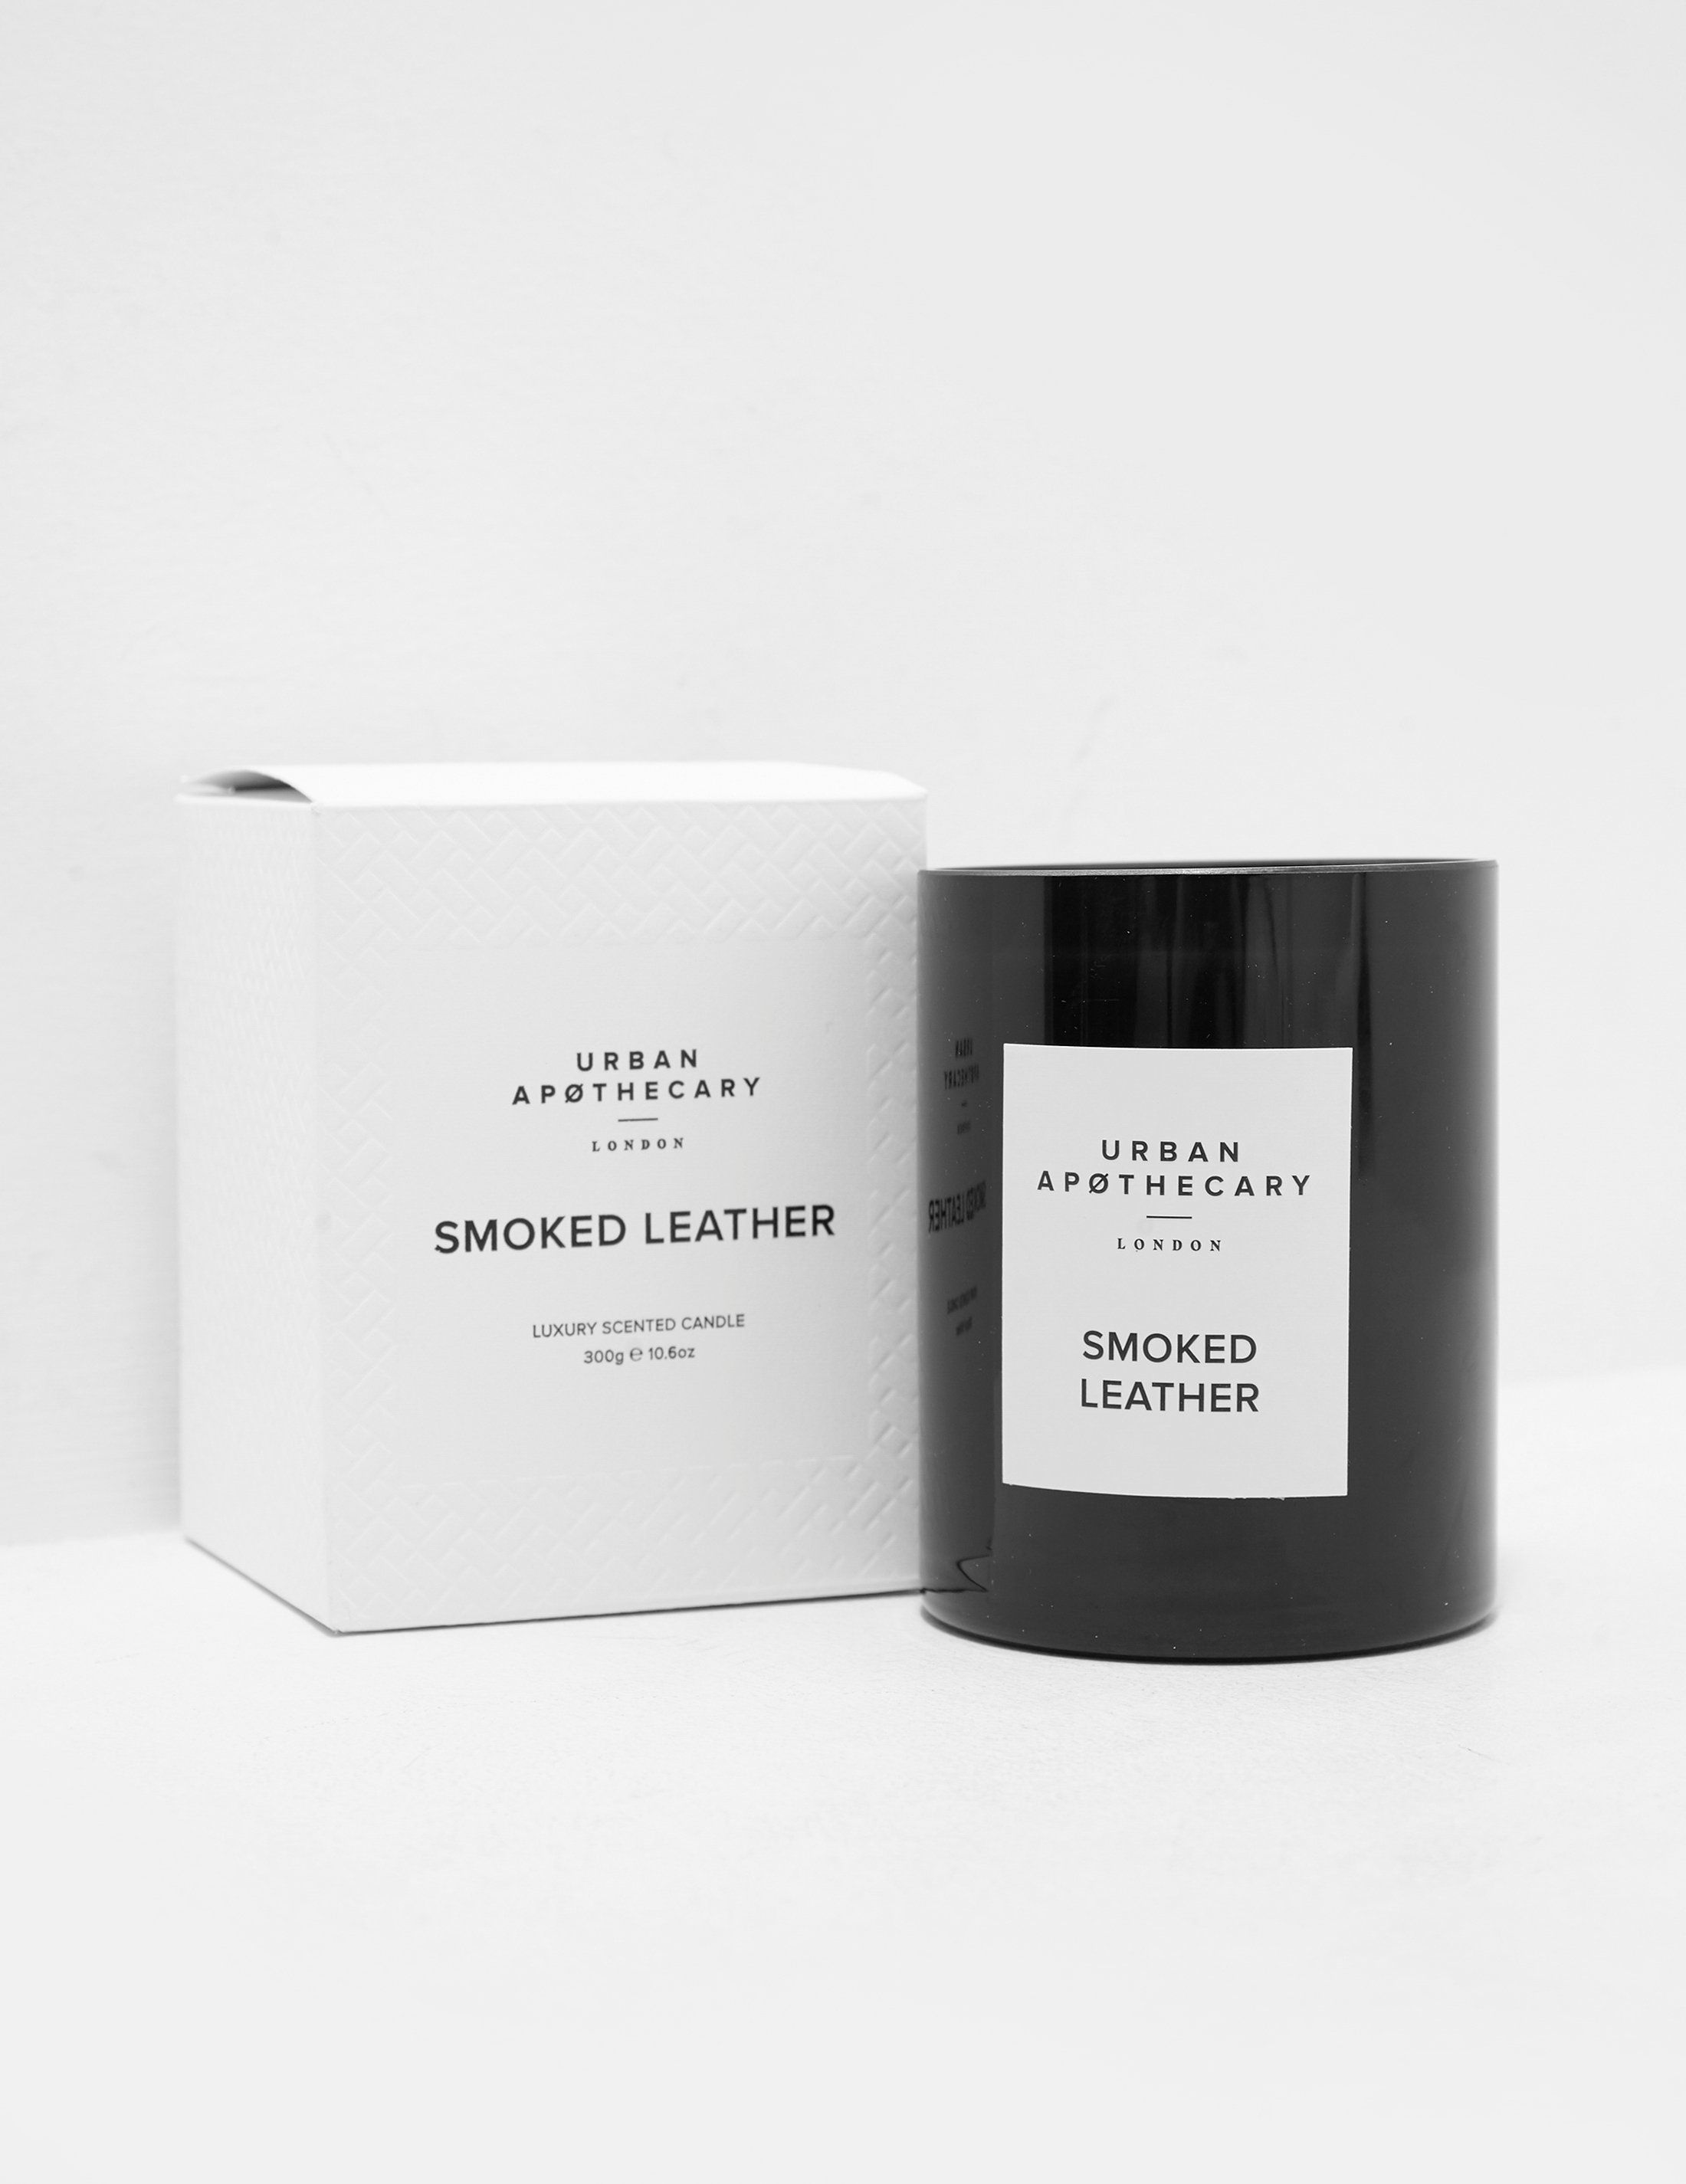 Urban Apothecary Smoked Leather Candle 300G